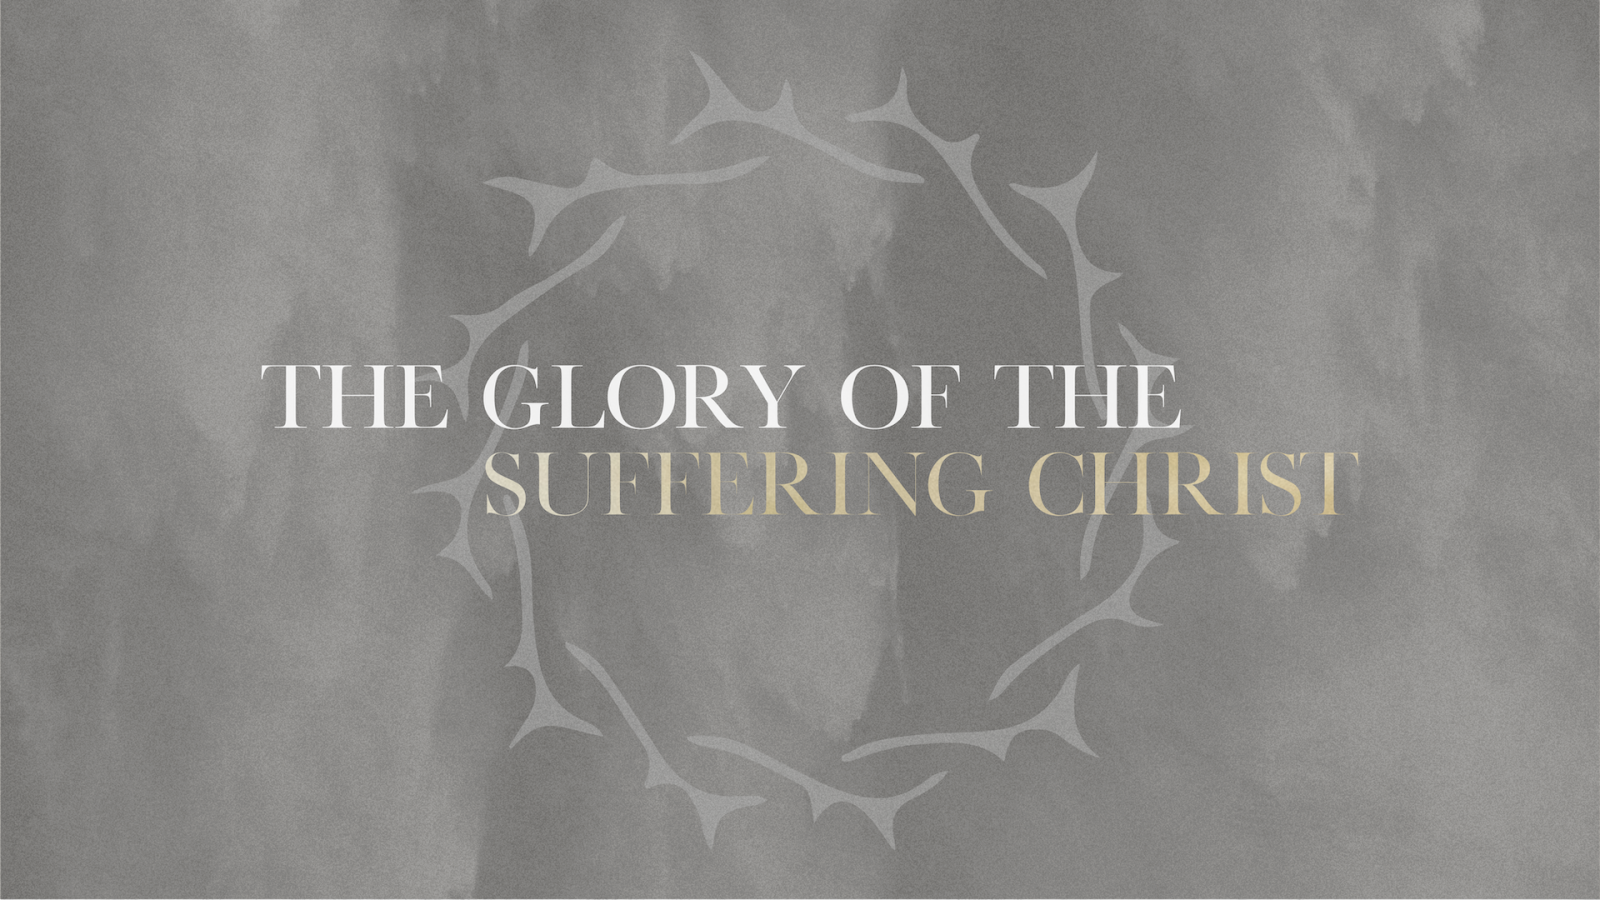 The Glory of the Suffering Christ